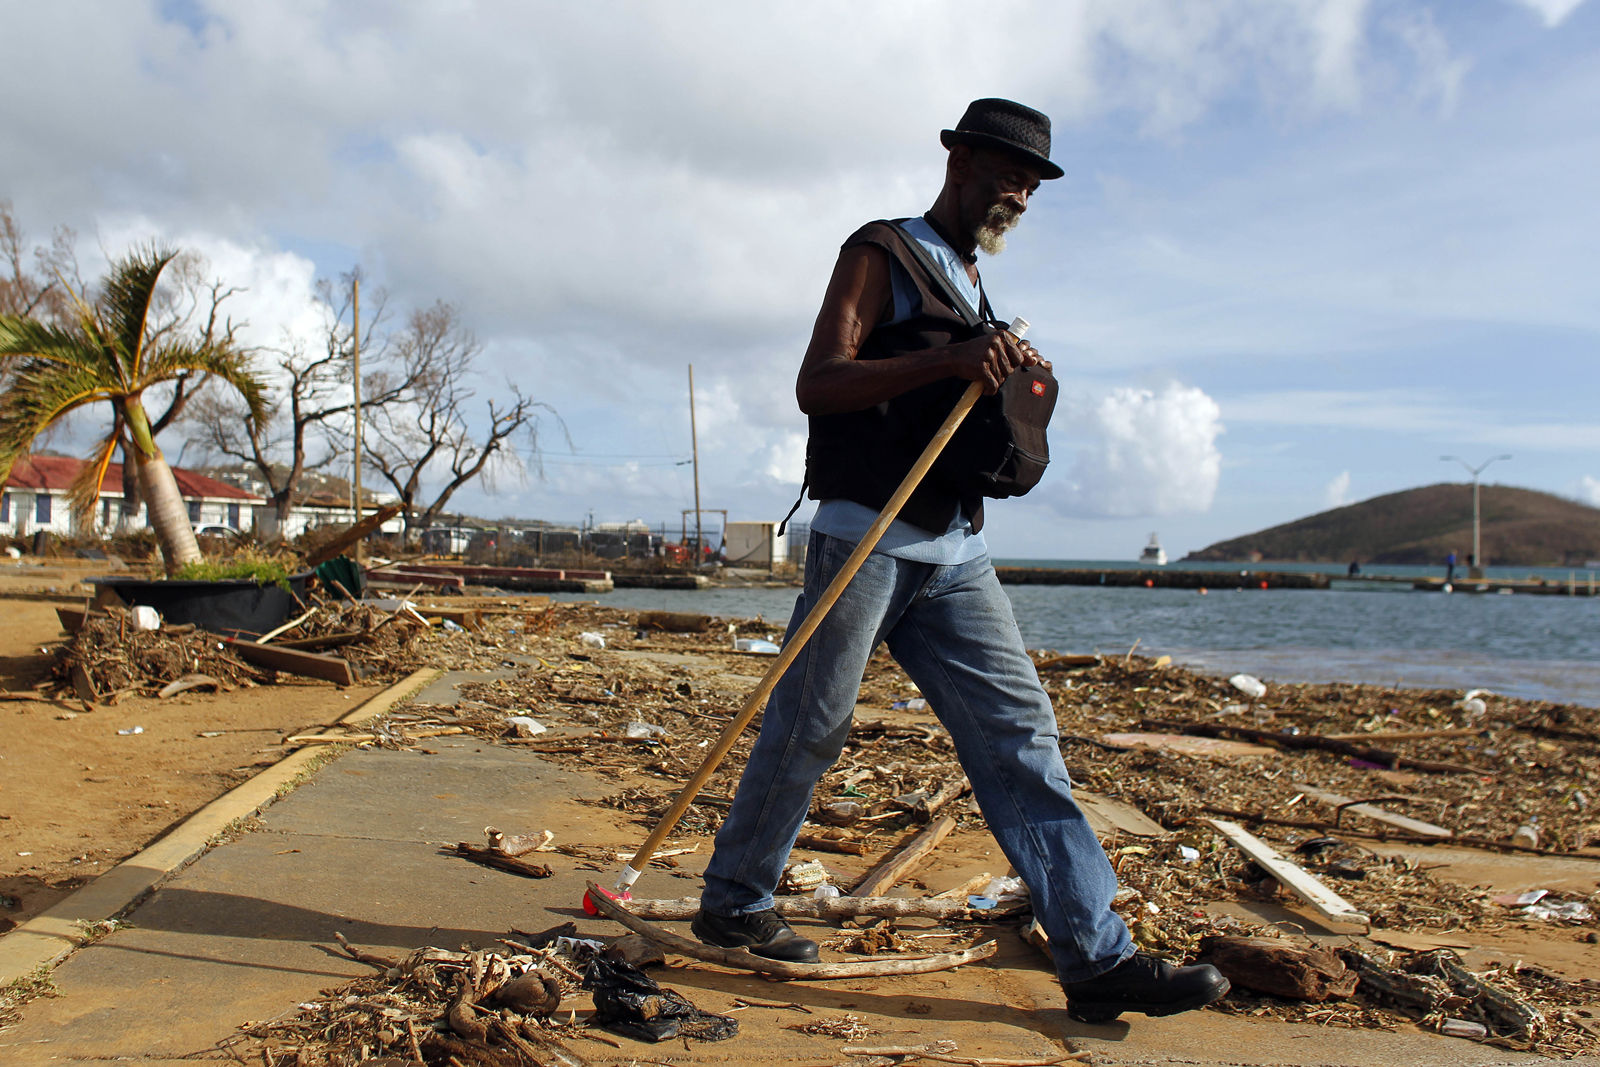 A man walks past debris caused by Hurricane Irma in Charlotte Amalie, St. Thomas, U.S. Virgin Islands, Sunday, Sept. 10, 2017.  The storm ravaged such lush resort islands as St. Martin, St. Barts, St. Thomas, Barbuda and Anguilla. (AP Photo/Ricardo Arduengo)